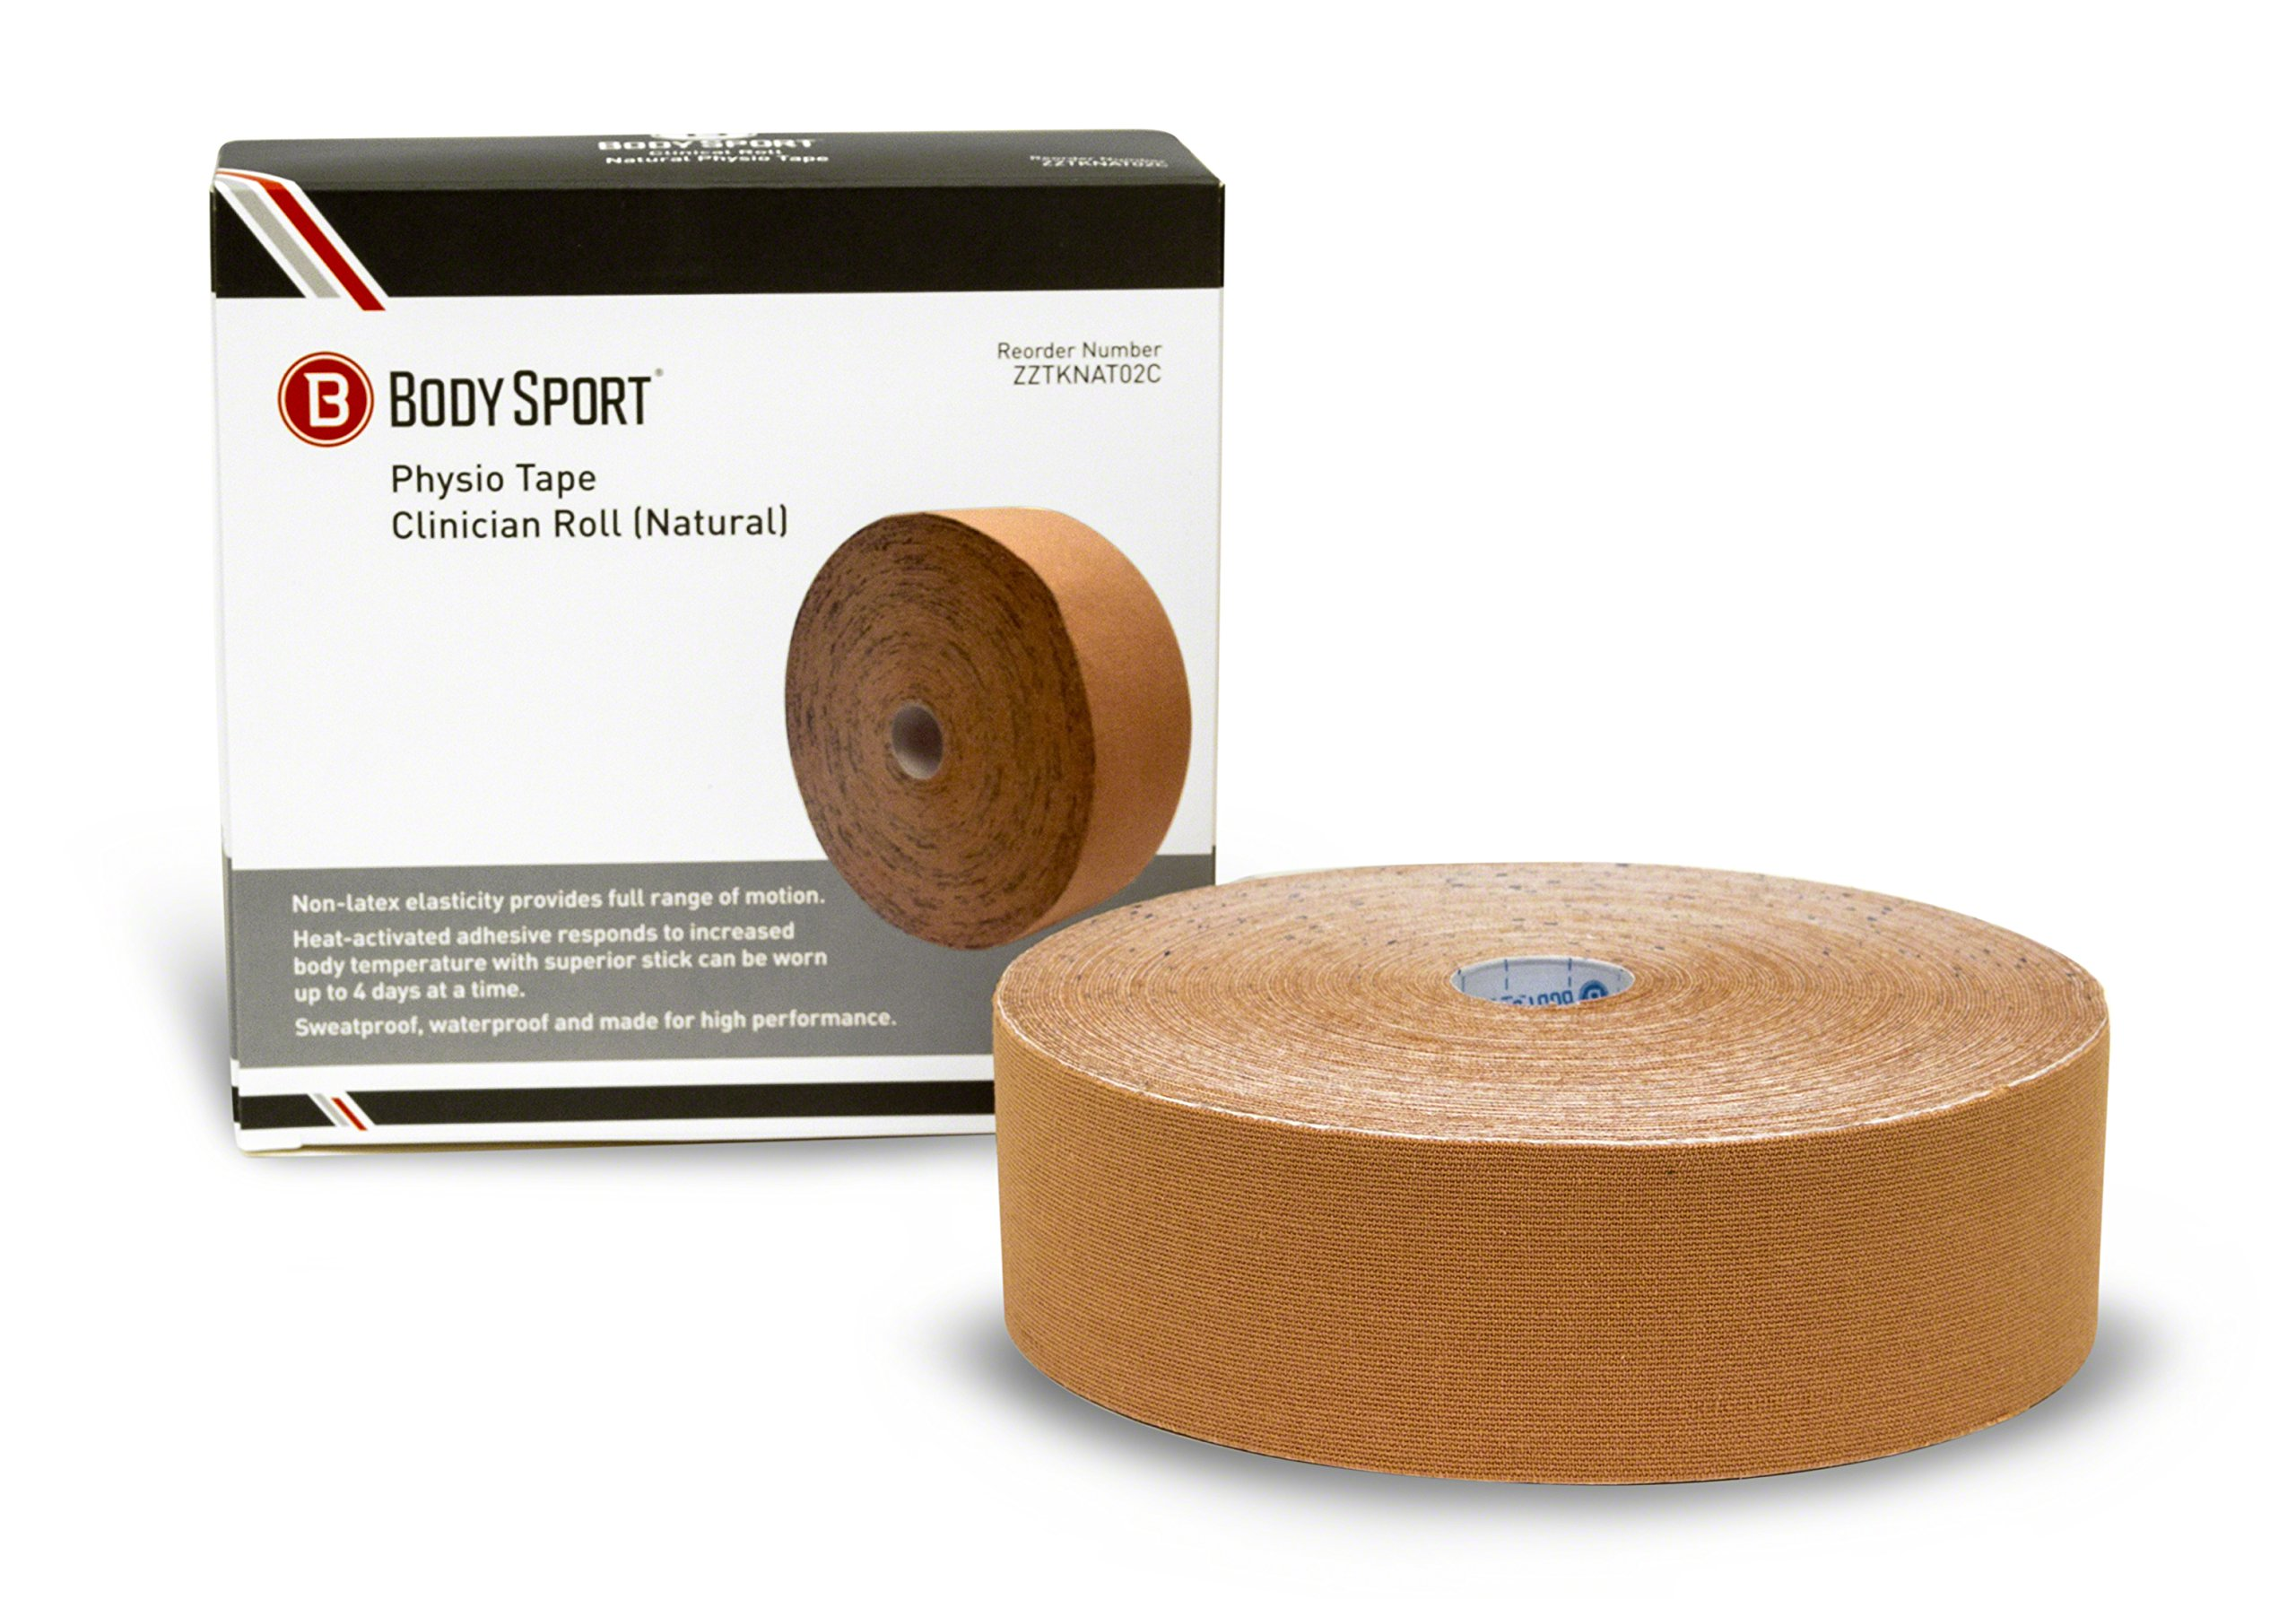 Body Sport Physio Tape, Kinesiology Tape to Support Muscles and Joints, Prevent Injury - Natural - 2 in x 33.5 yds